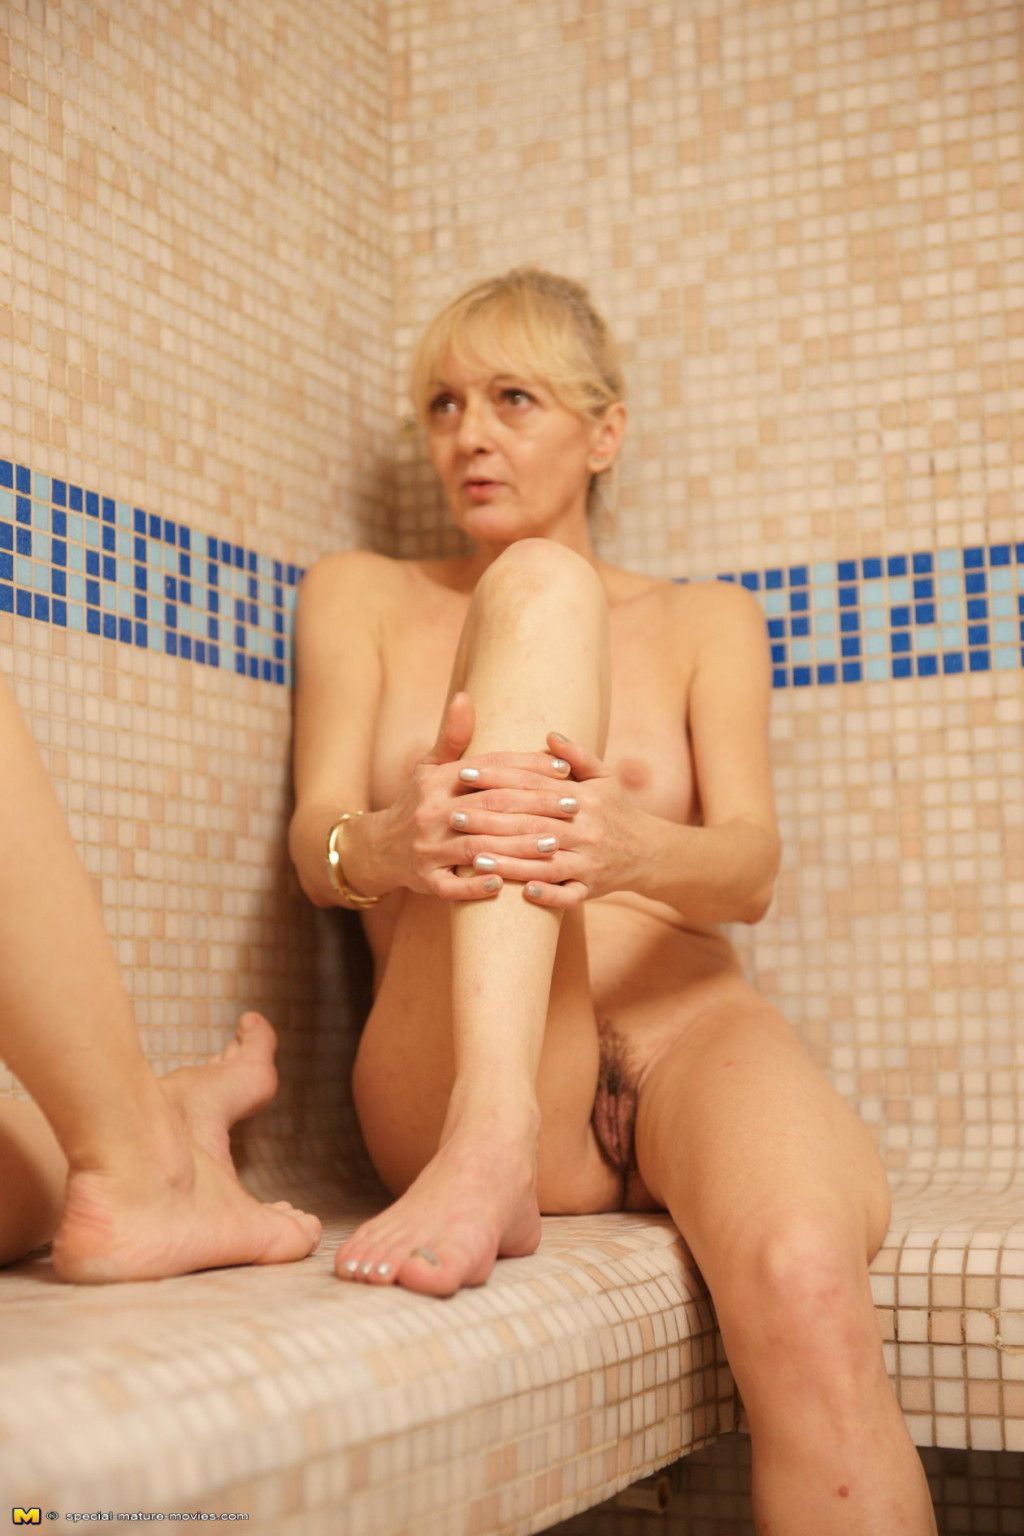 Take a look at an all female sauna